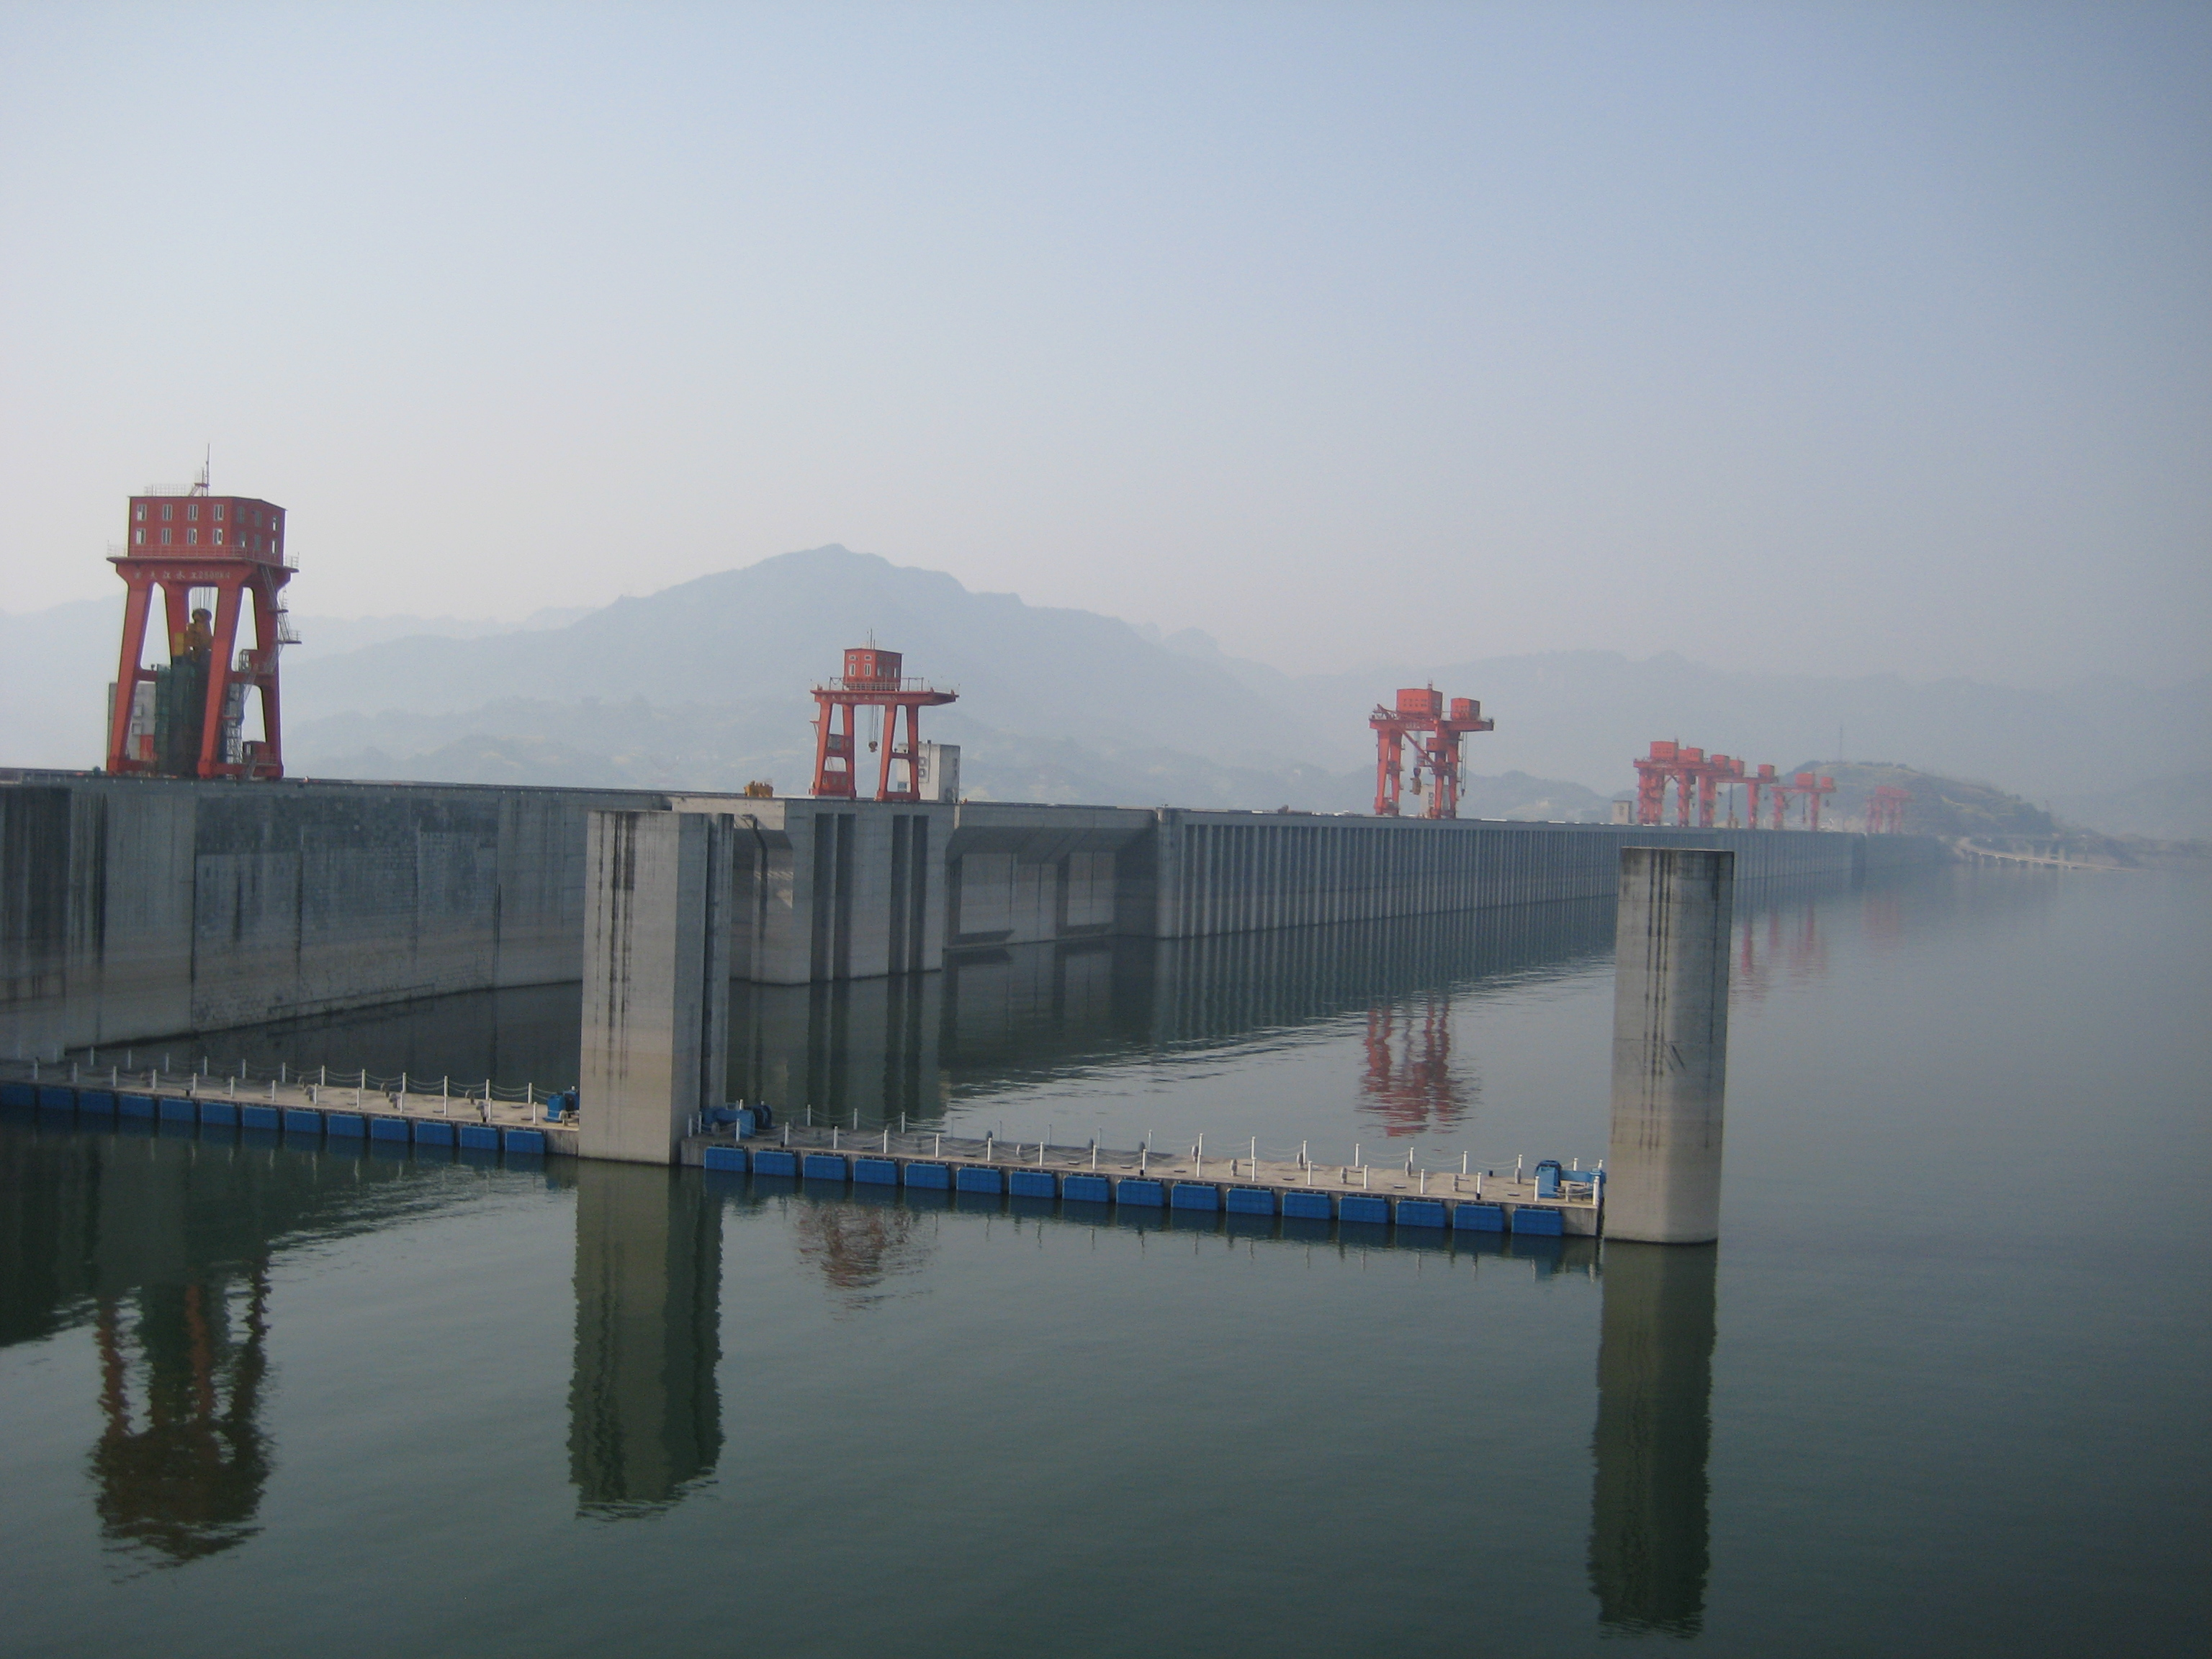 gorges dam In order to make an informed decision on how you feel about the three gorges dam it is best that you know what it is, and the pros and cons for this topic.